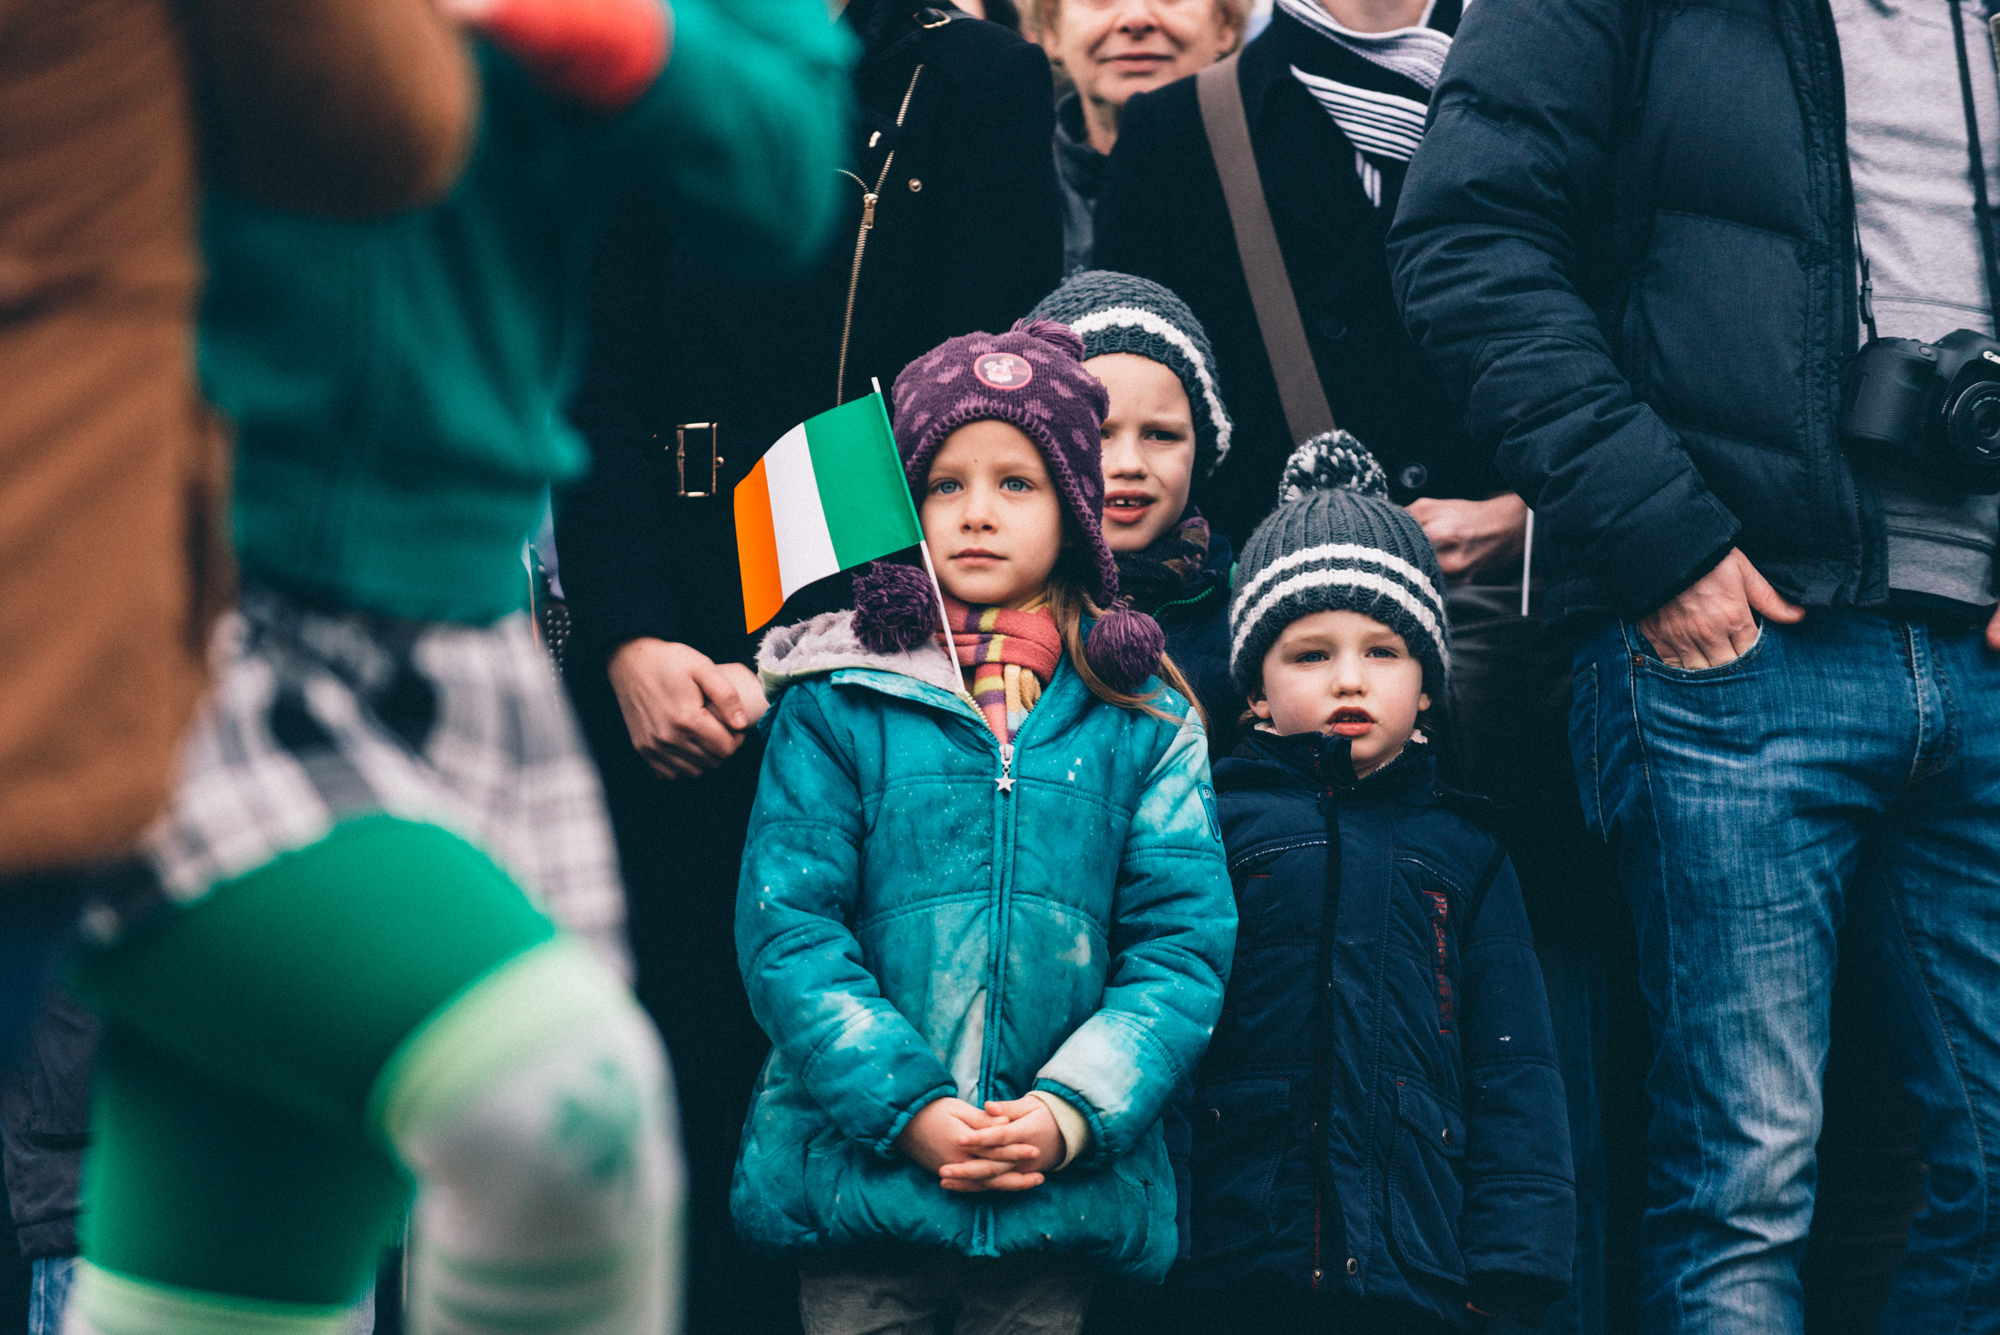 st-patricks-day-berlin-©-camille-blake-14.jpg